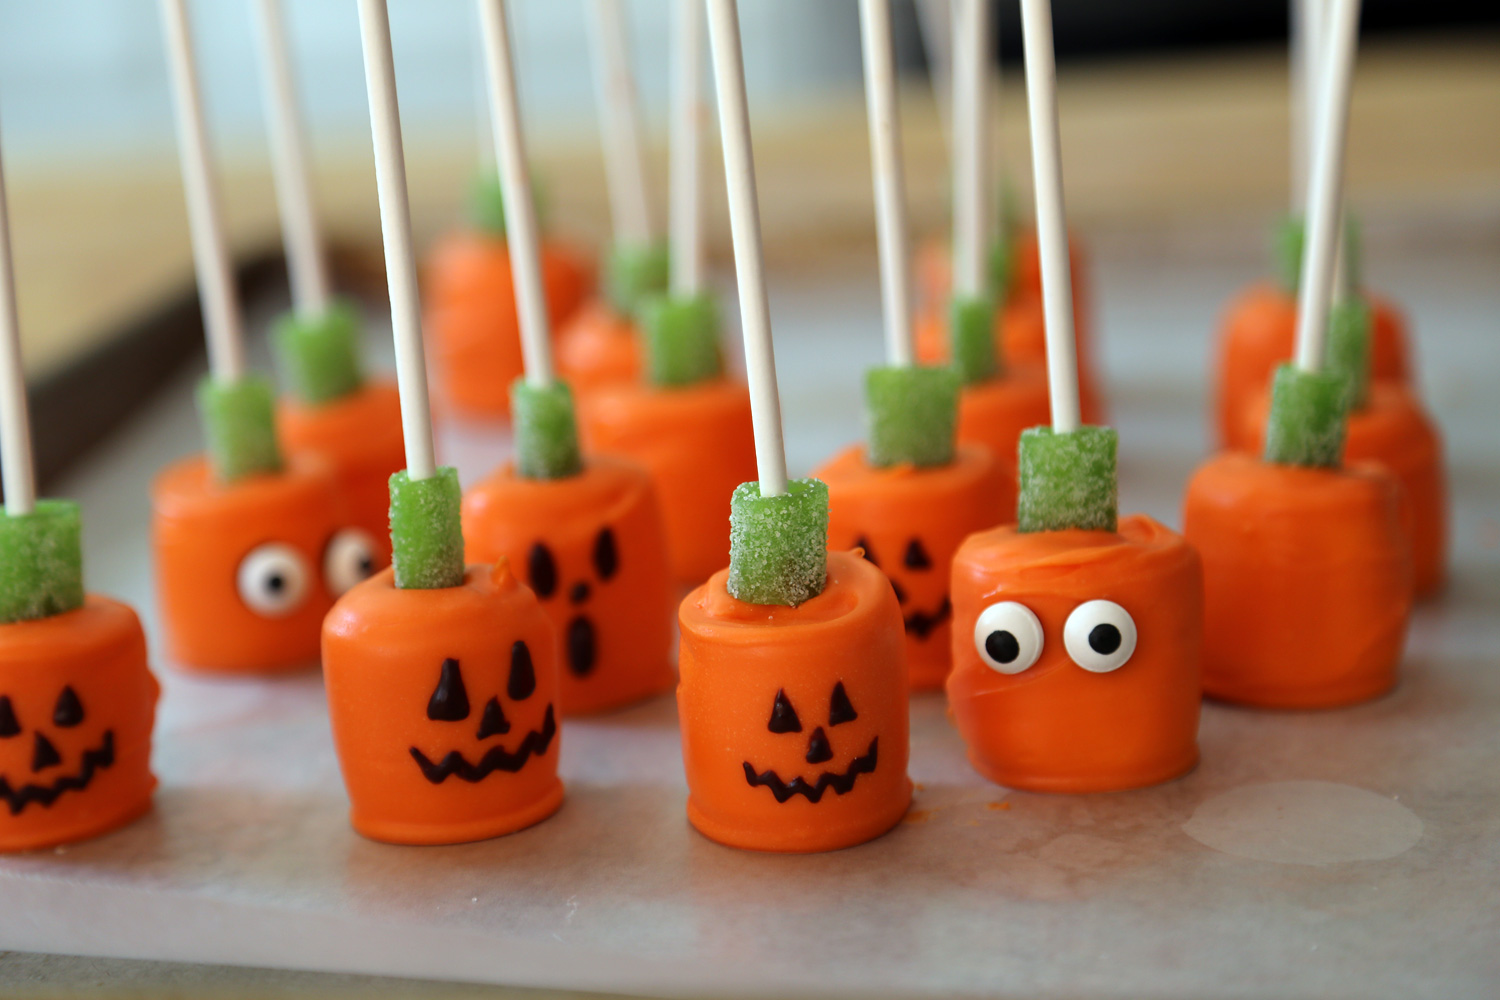 Alternatively, put a blob of chocolate on the pumpkins and add candy eyeballs.